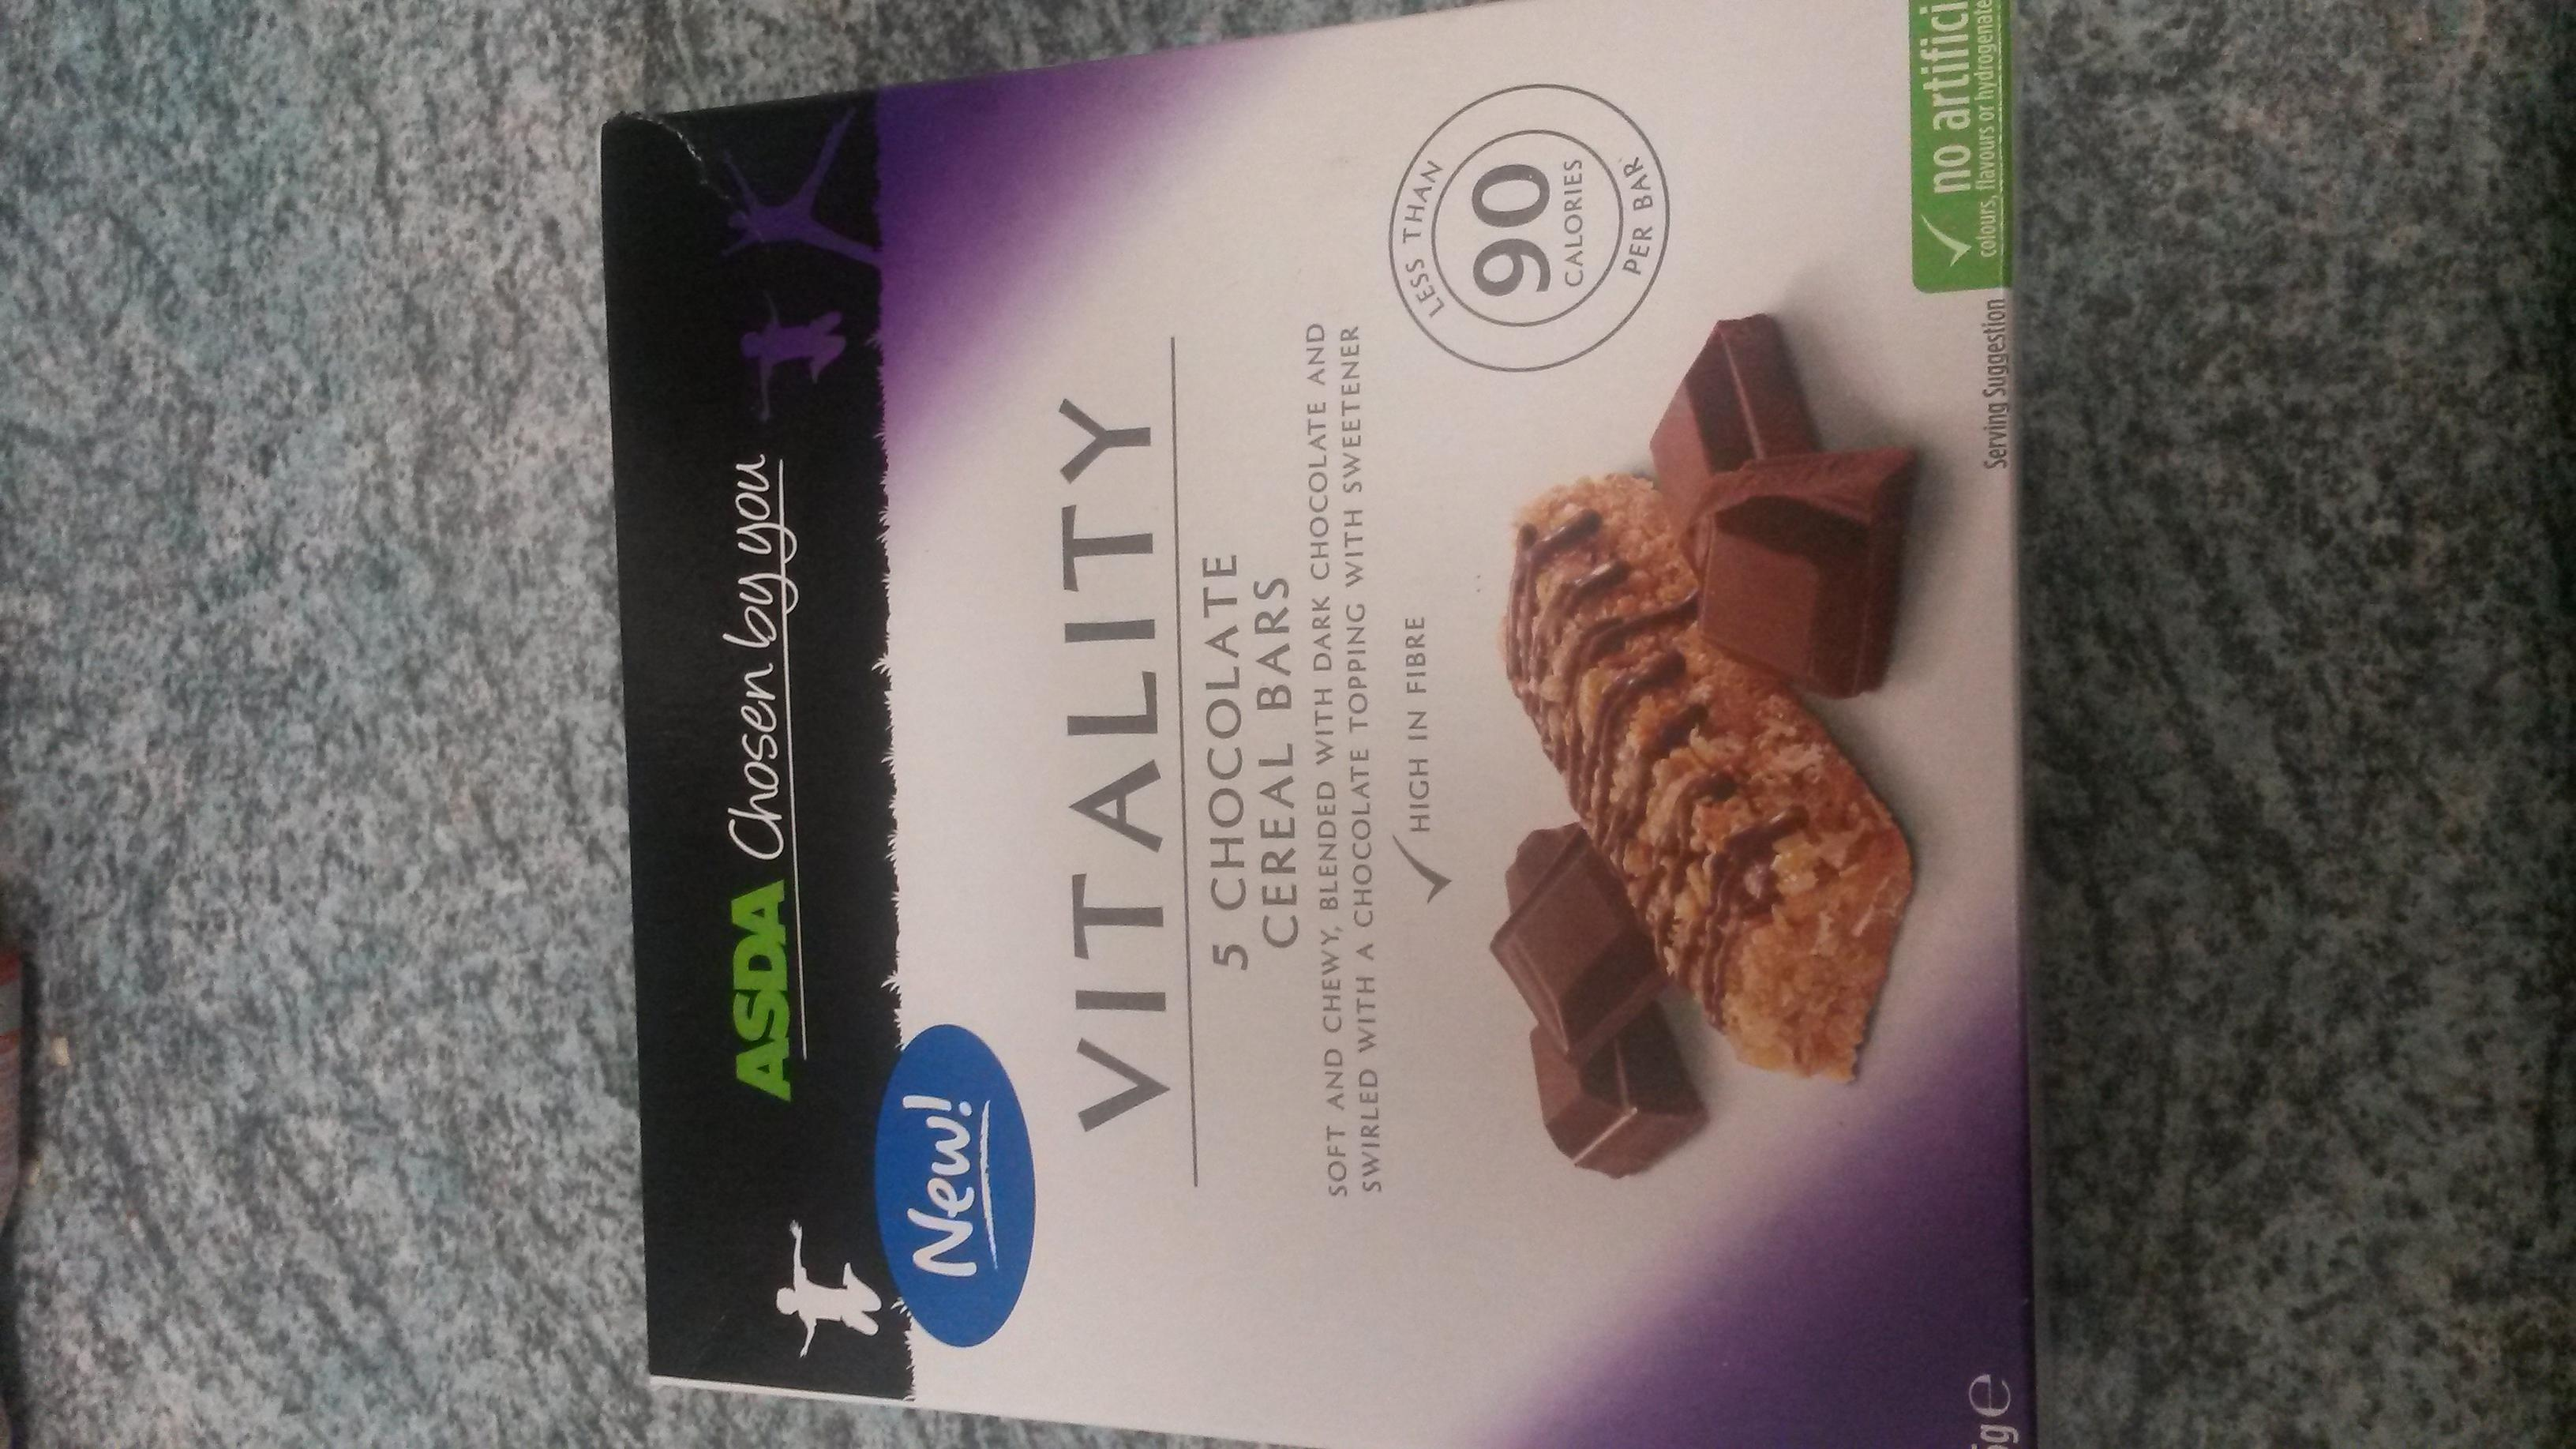 new asda vitality bars-20140331_225915.jpg